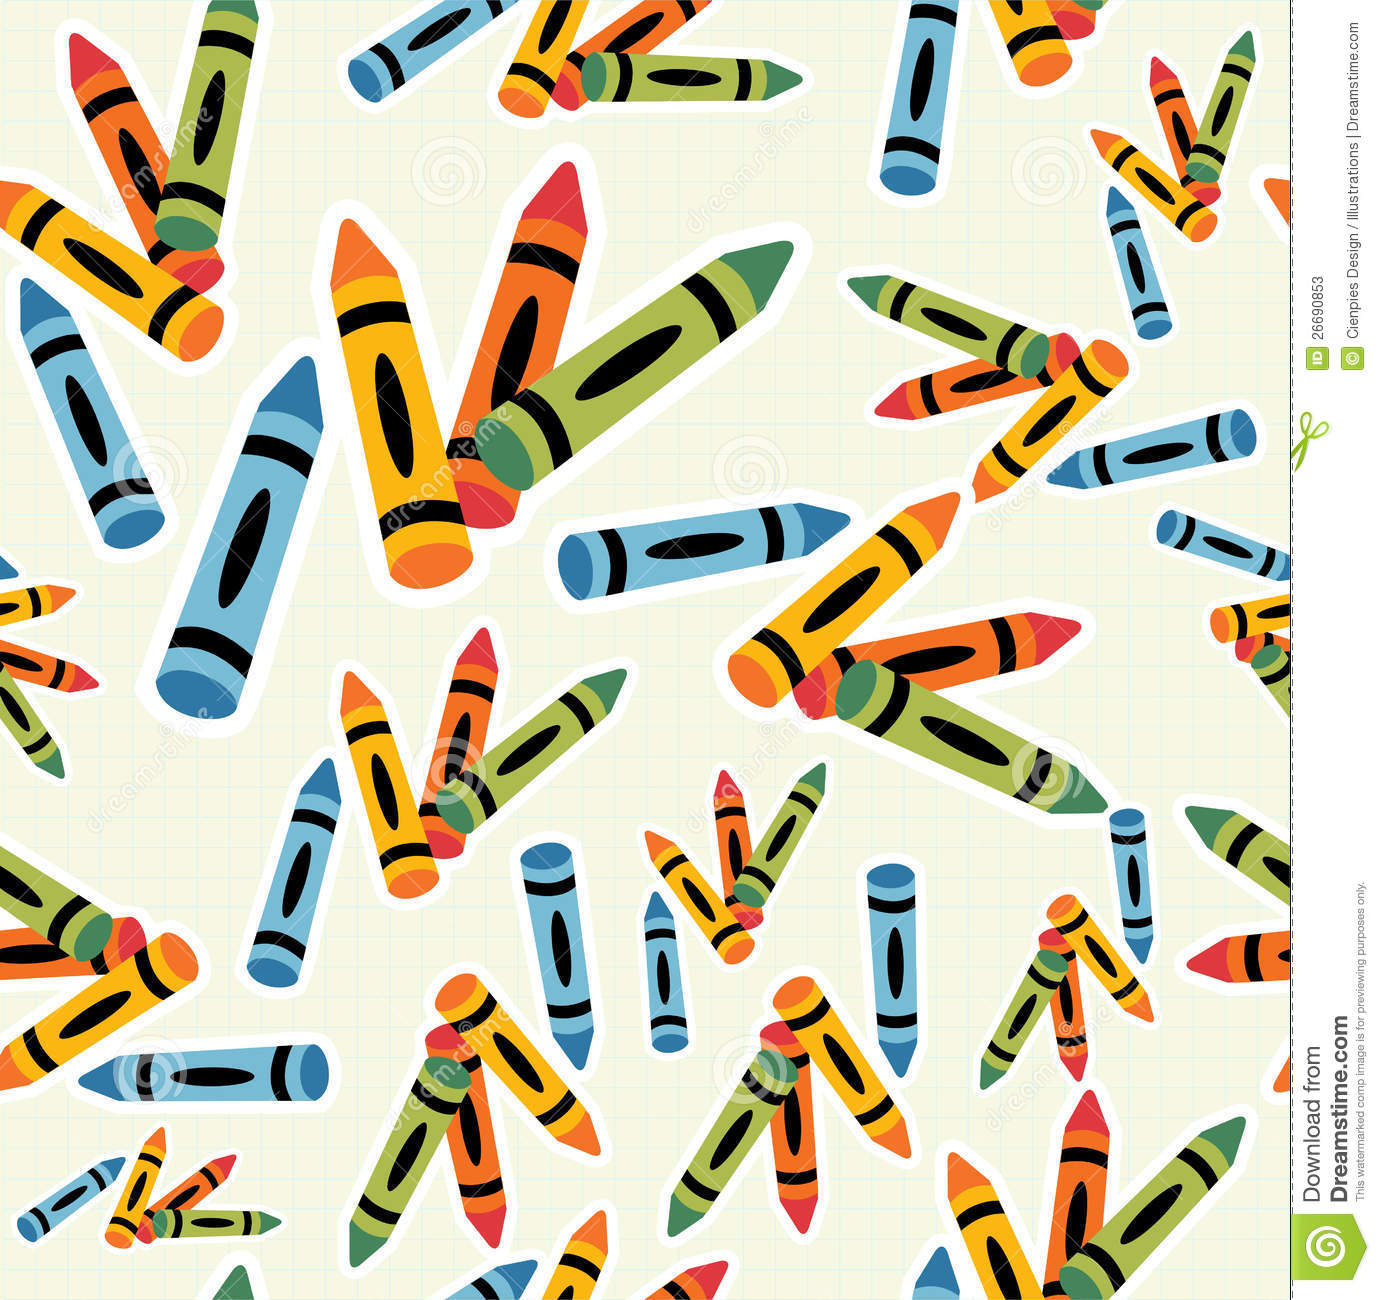 Multicolored Crayons Pattern Background Stock Photos